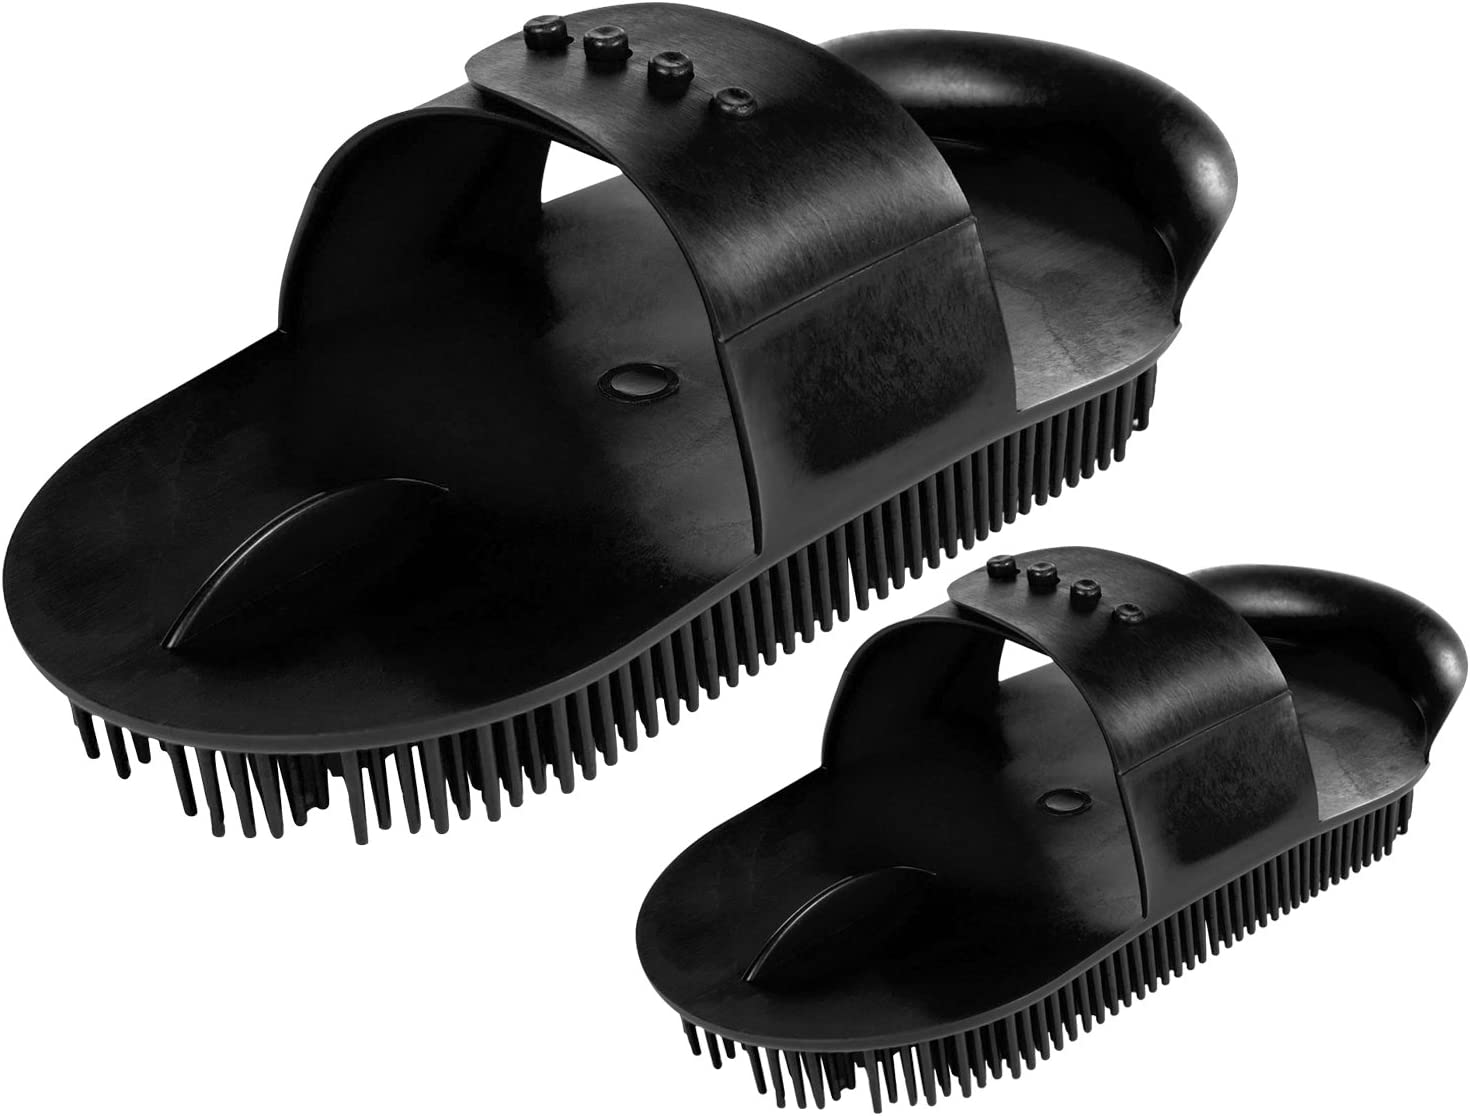 Plastic Curry Comb with Adjustable Strap for Horse Pony Grooming Care Available in Two Sizes AND Tigerbox/® Antibacterial Pen!